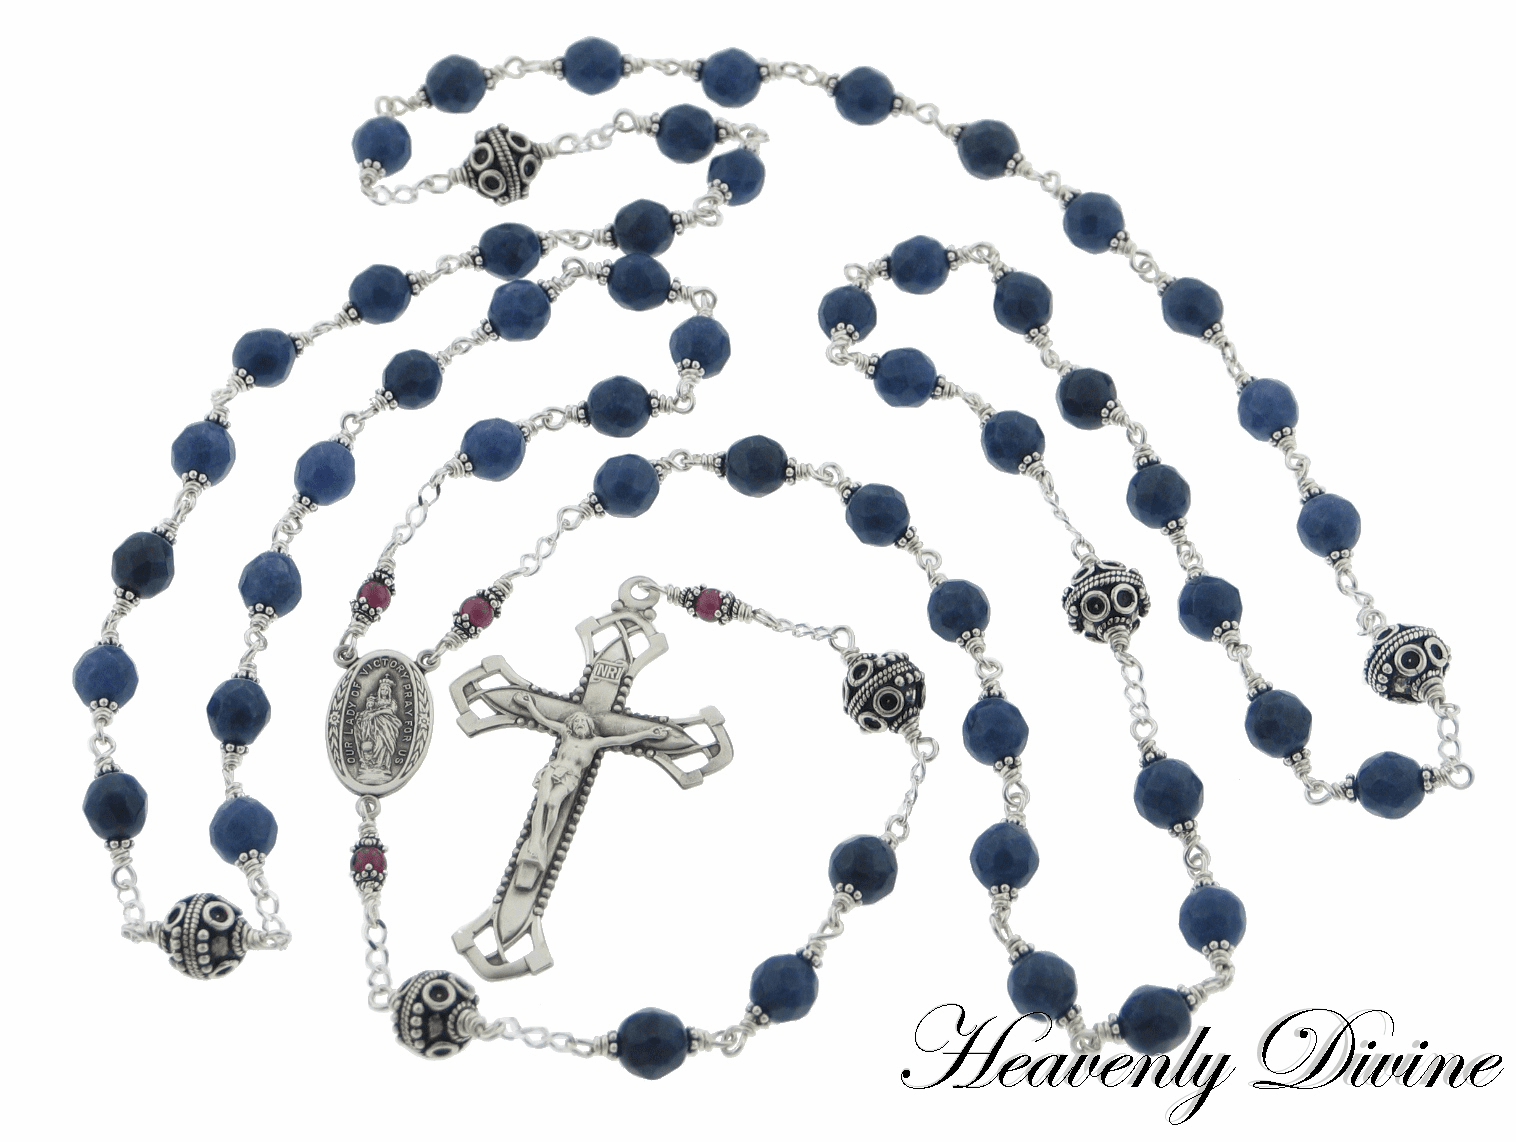 Our Lady of Victory Swarovski Sapphire & Garnet Crystal Rosary